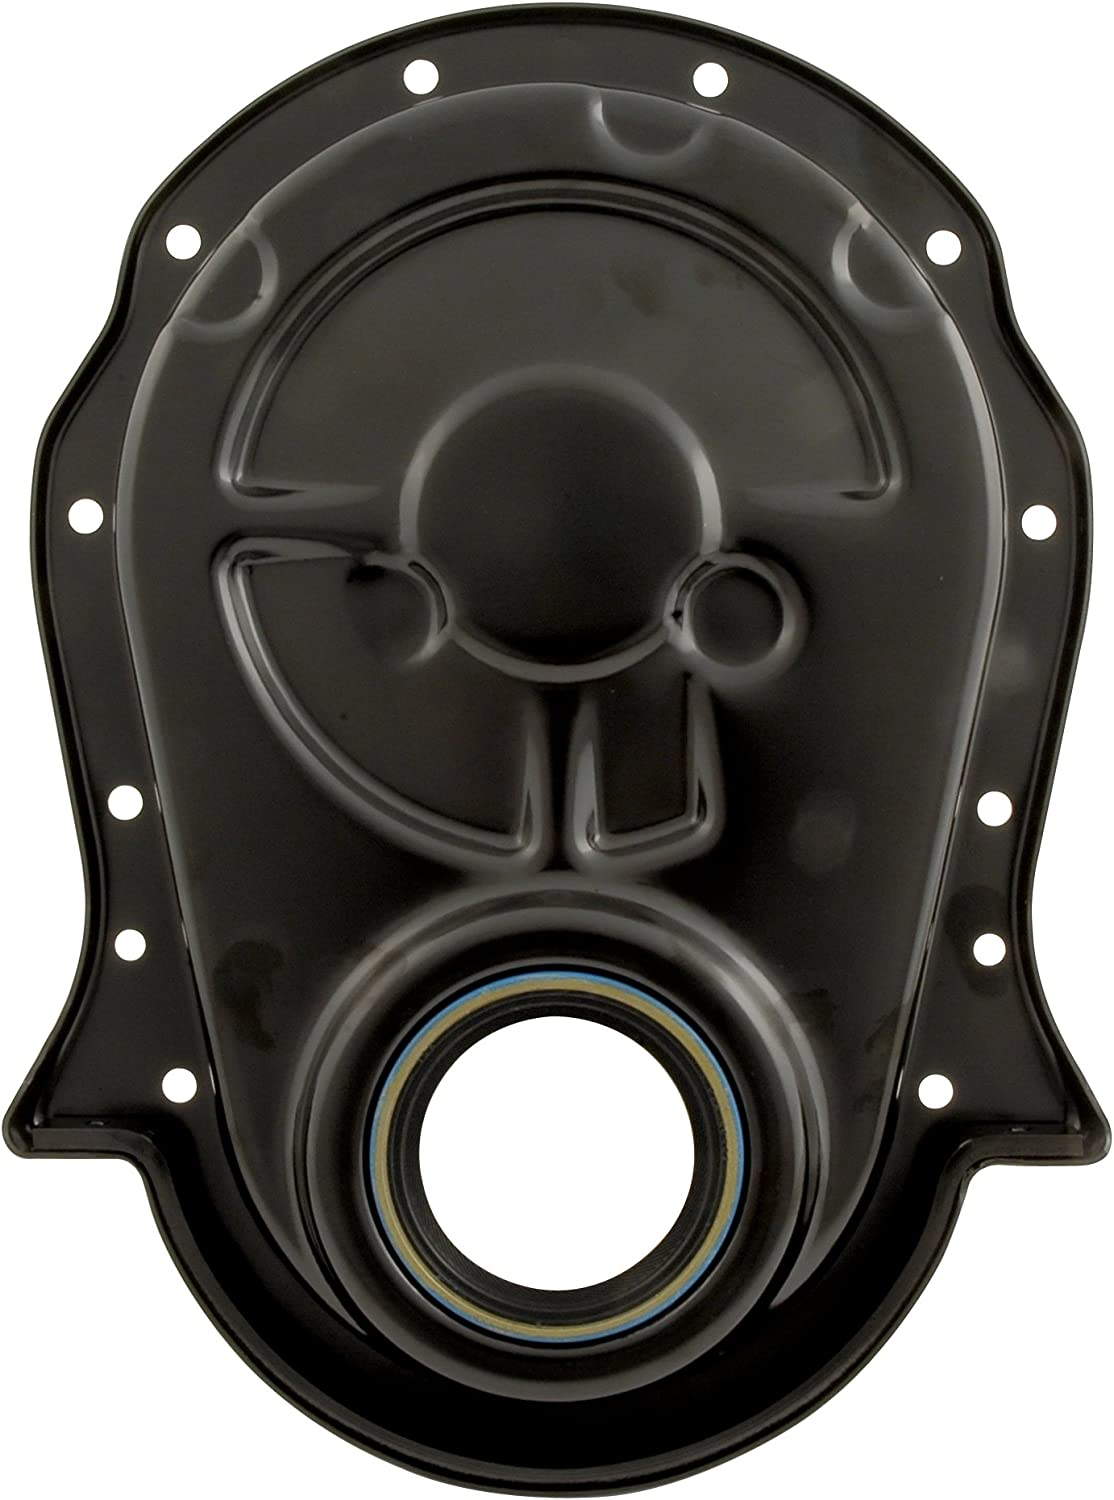 Pro//Cam 9520-S Big Block Chevy Timing Cover with Seal